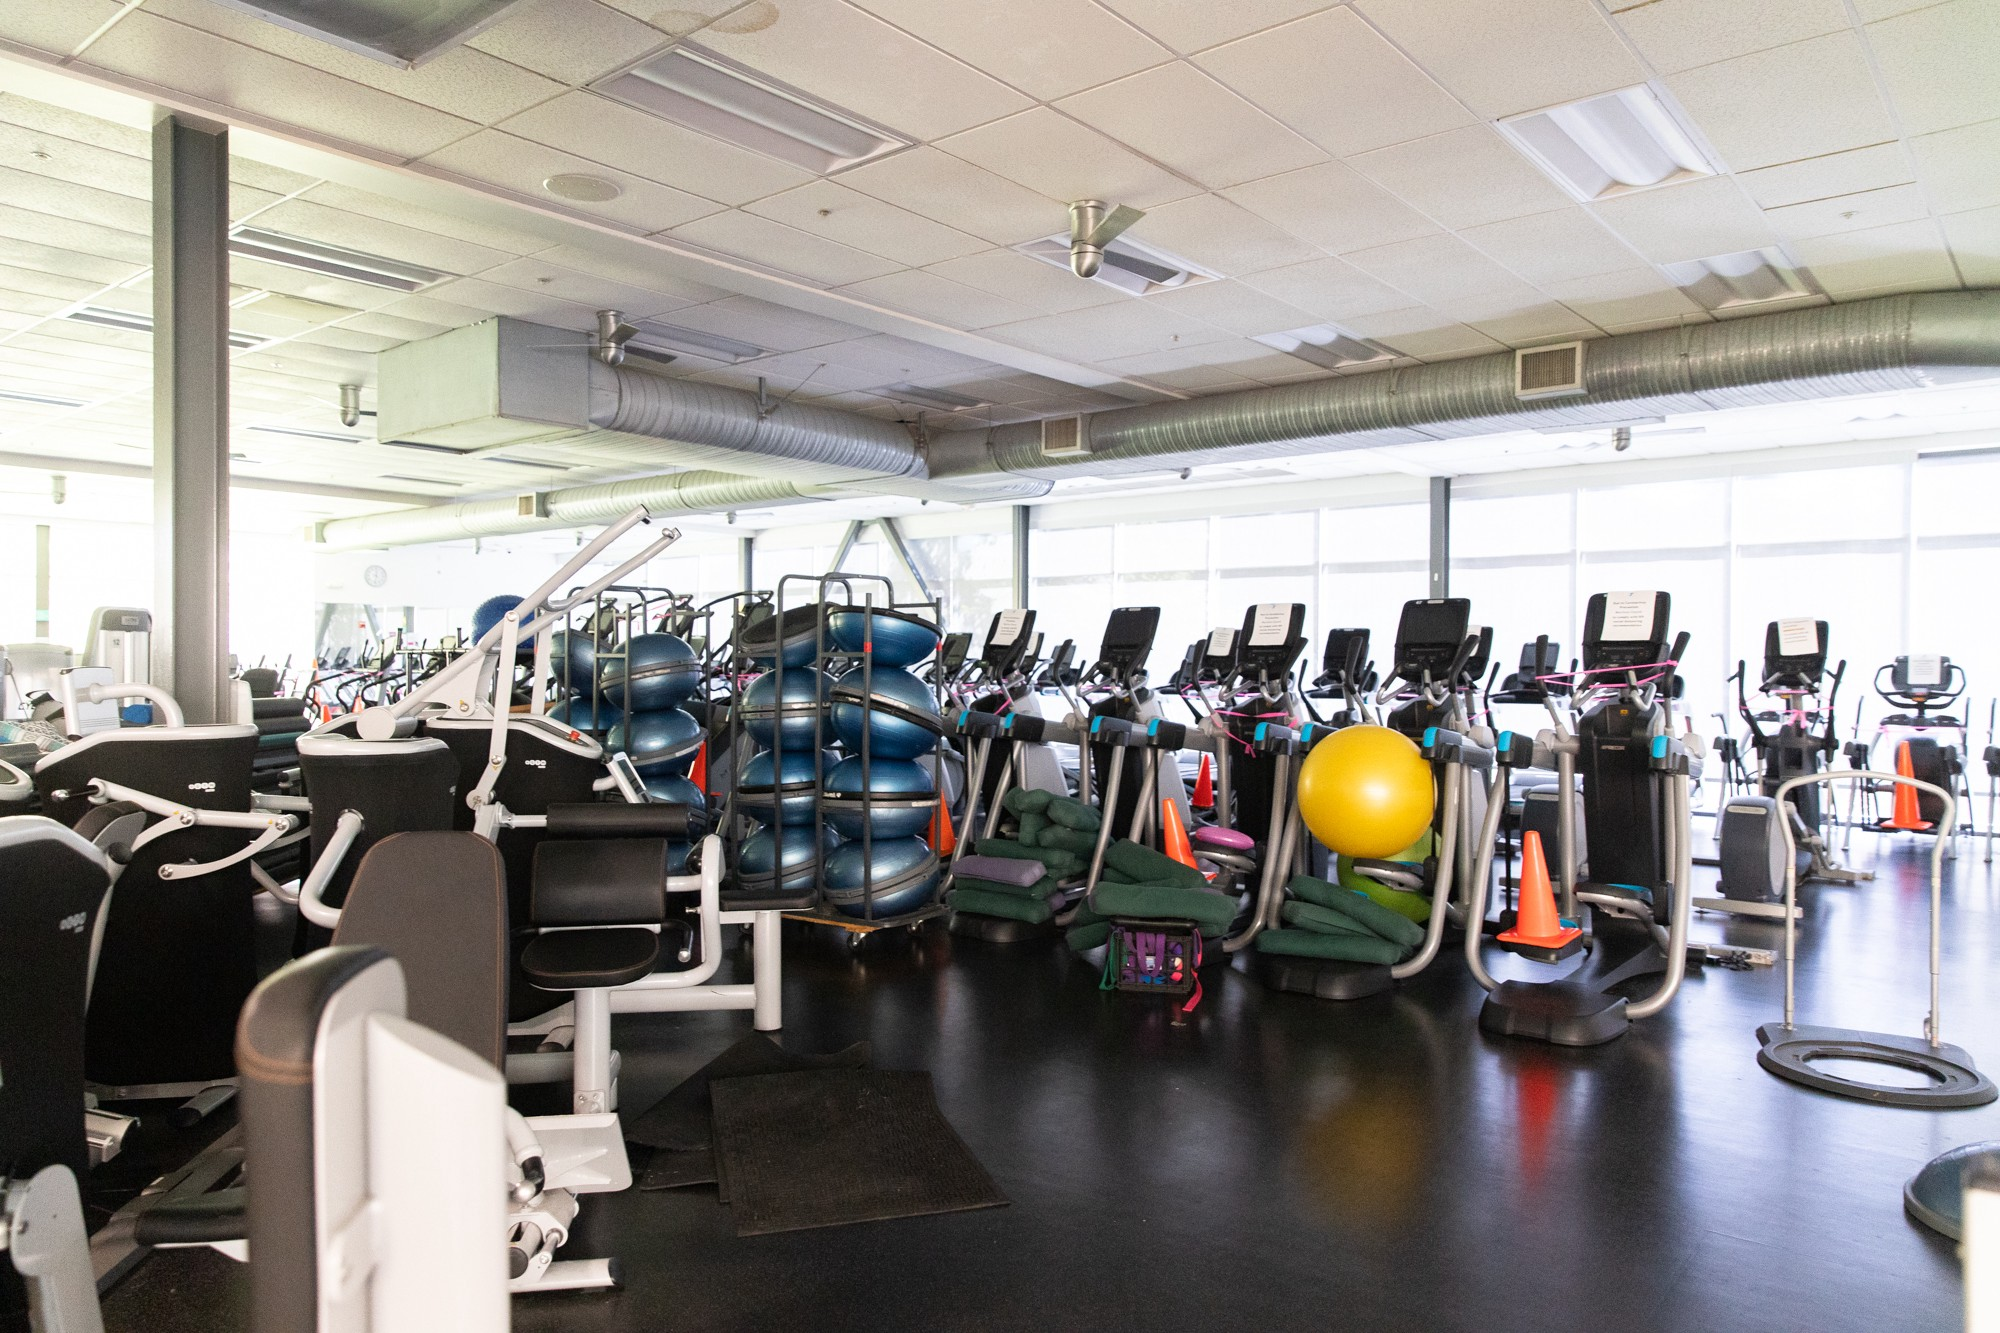 Shuttered Gyms Dumbbell Price Gouging Covid 19 Is Threatening The Peninsula S Diverse Fitness Scene By Kate Bradshaw The Six Fifty